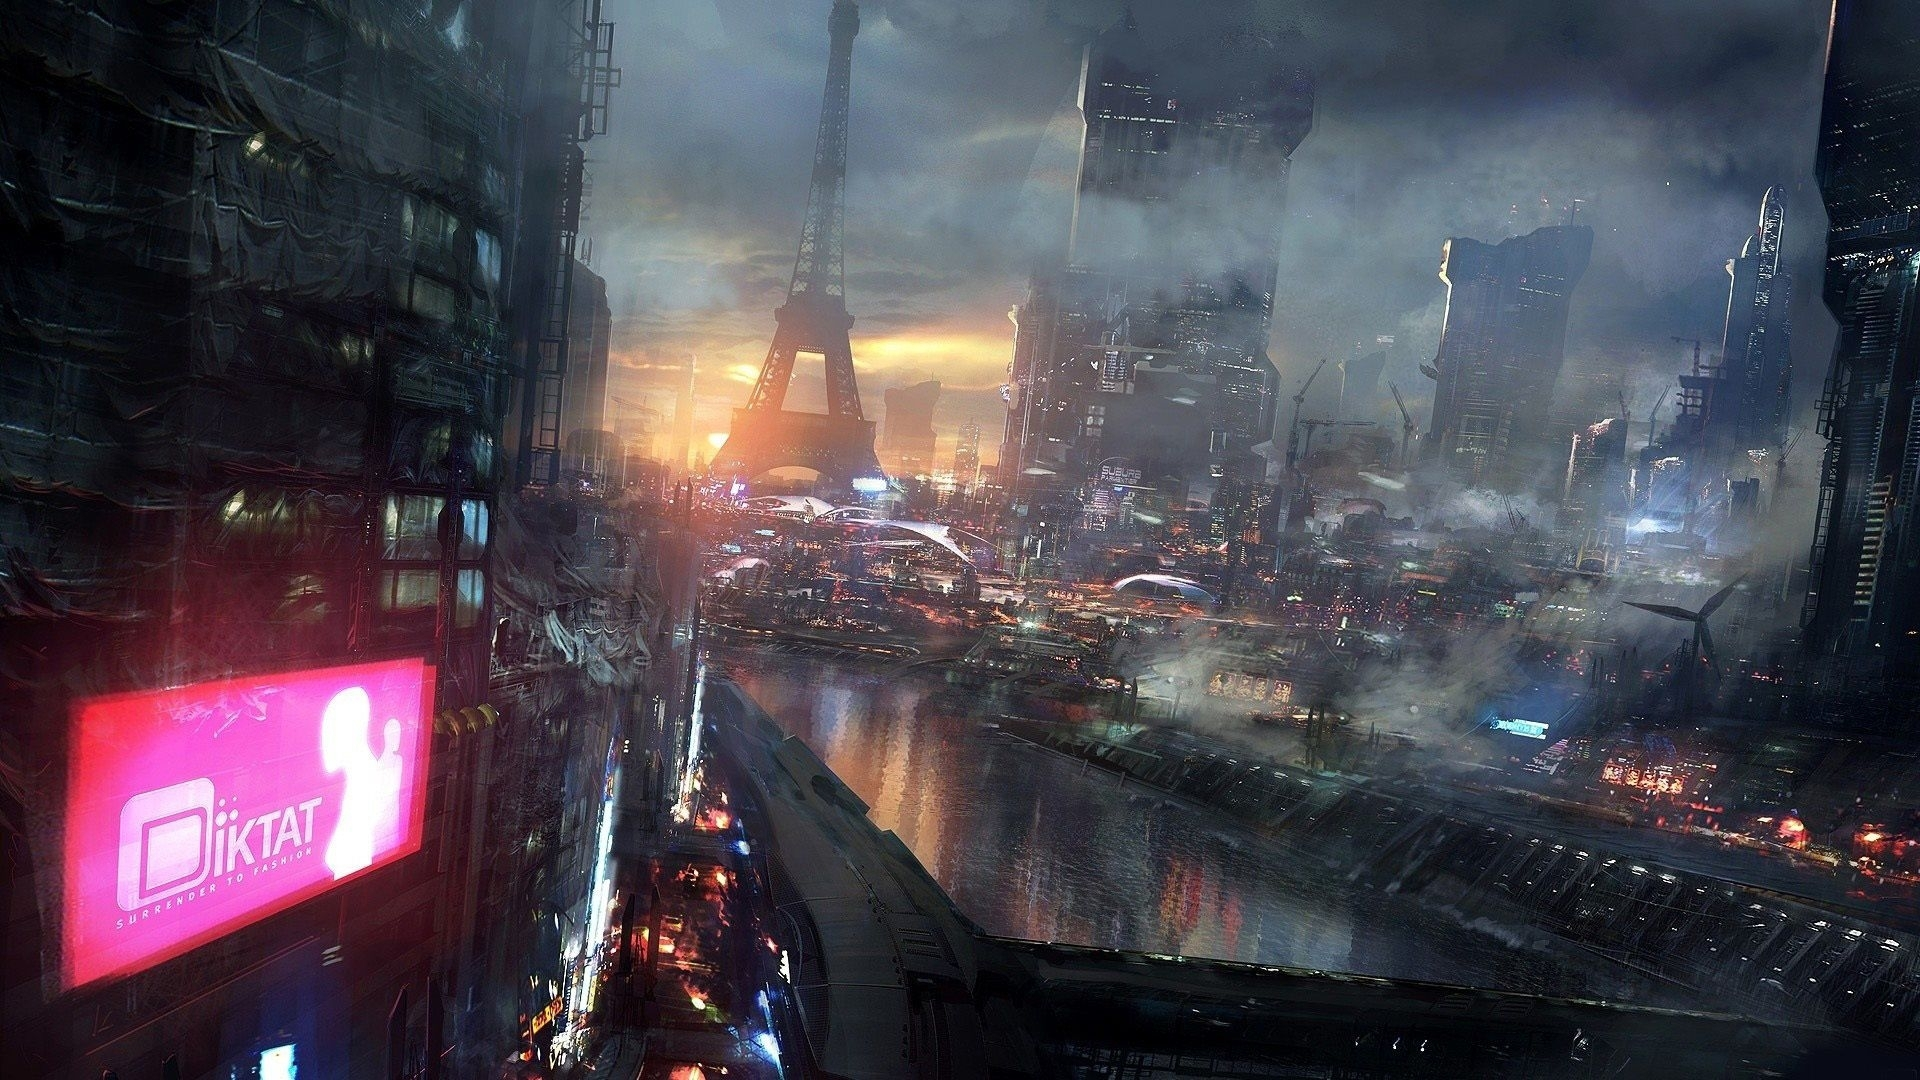 future city night download wallpaper city, night | ◊ giants